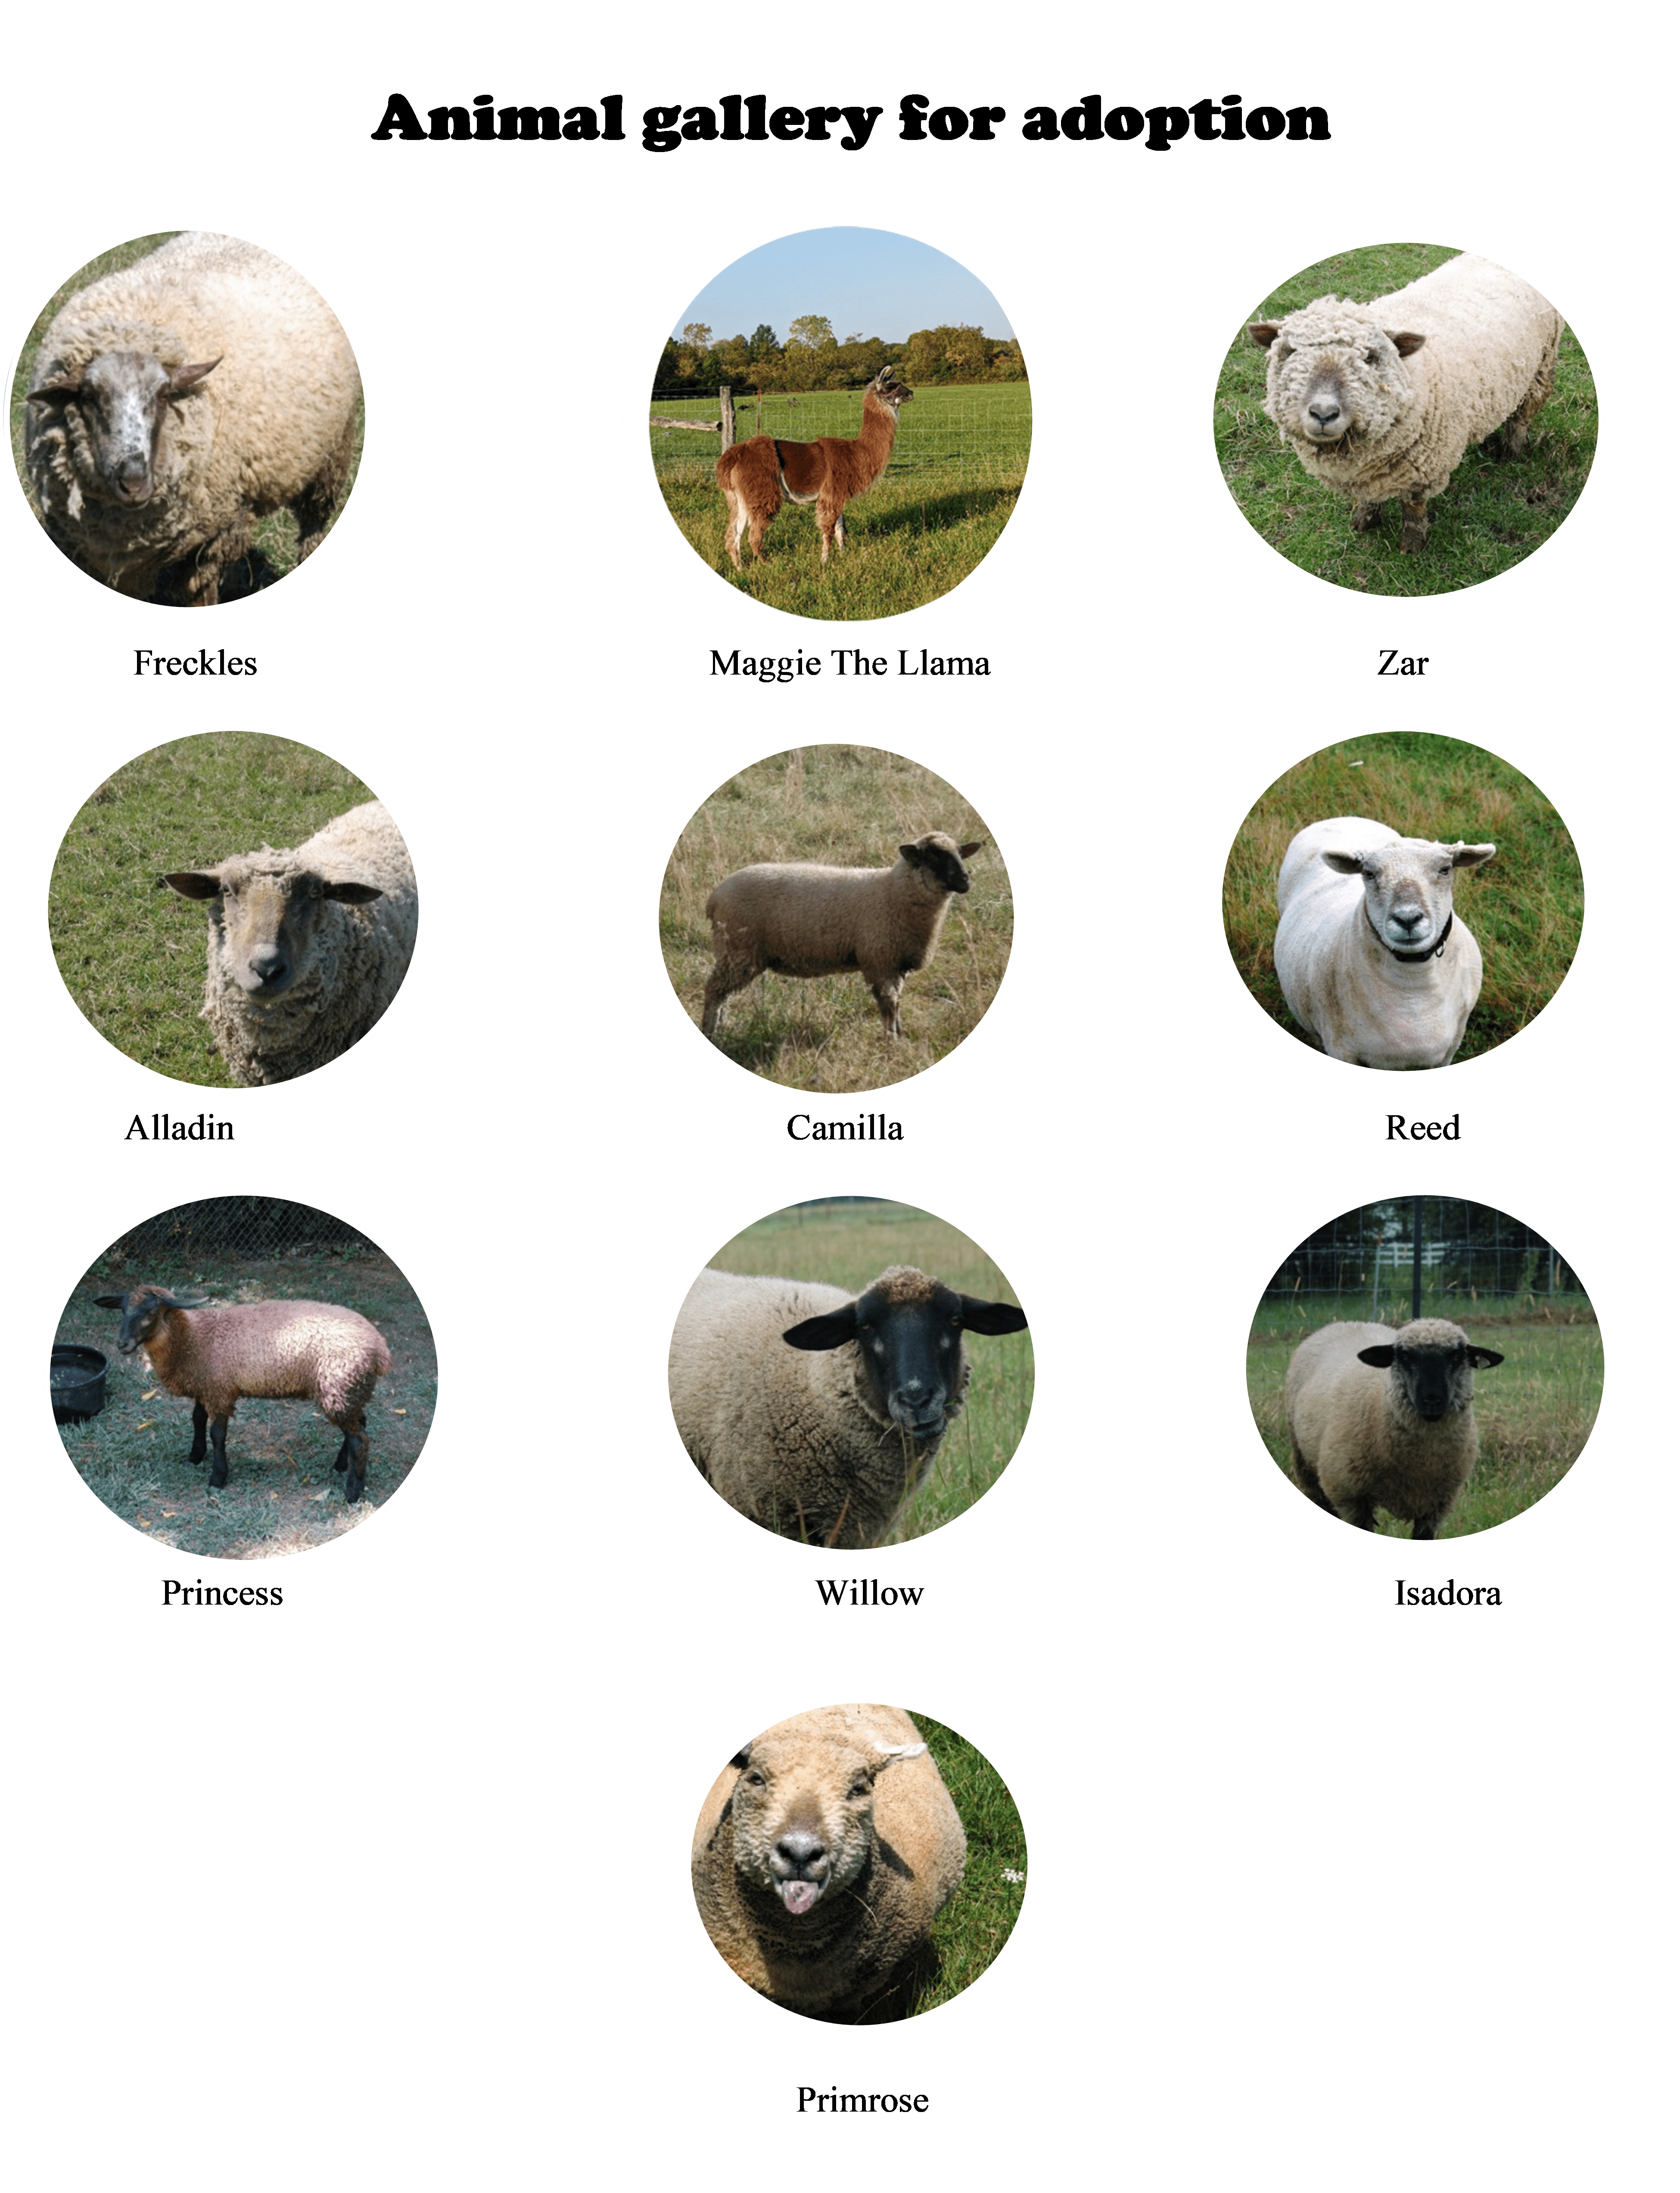 The faces of our sheep & llama in small circles.